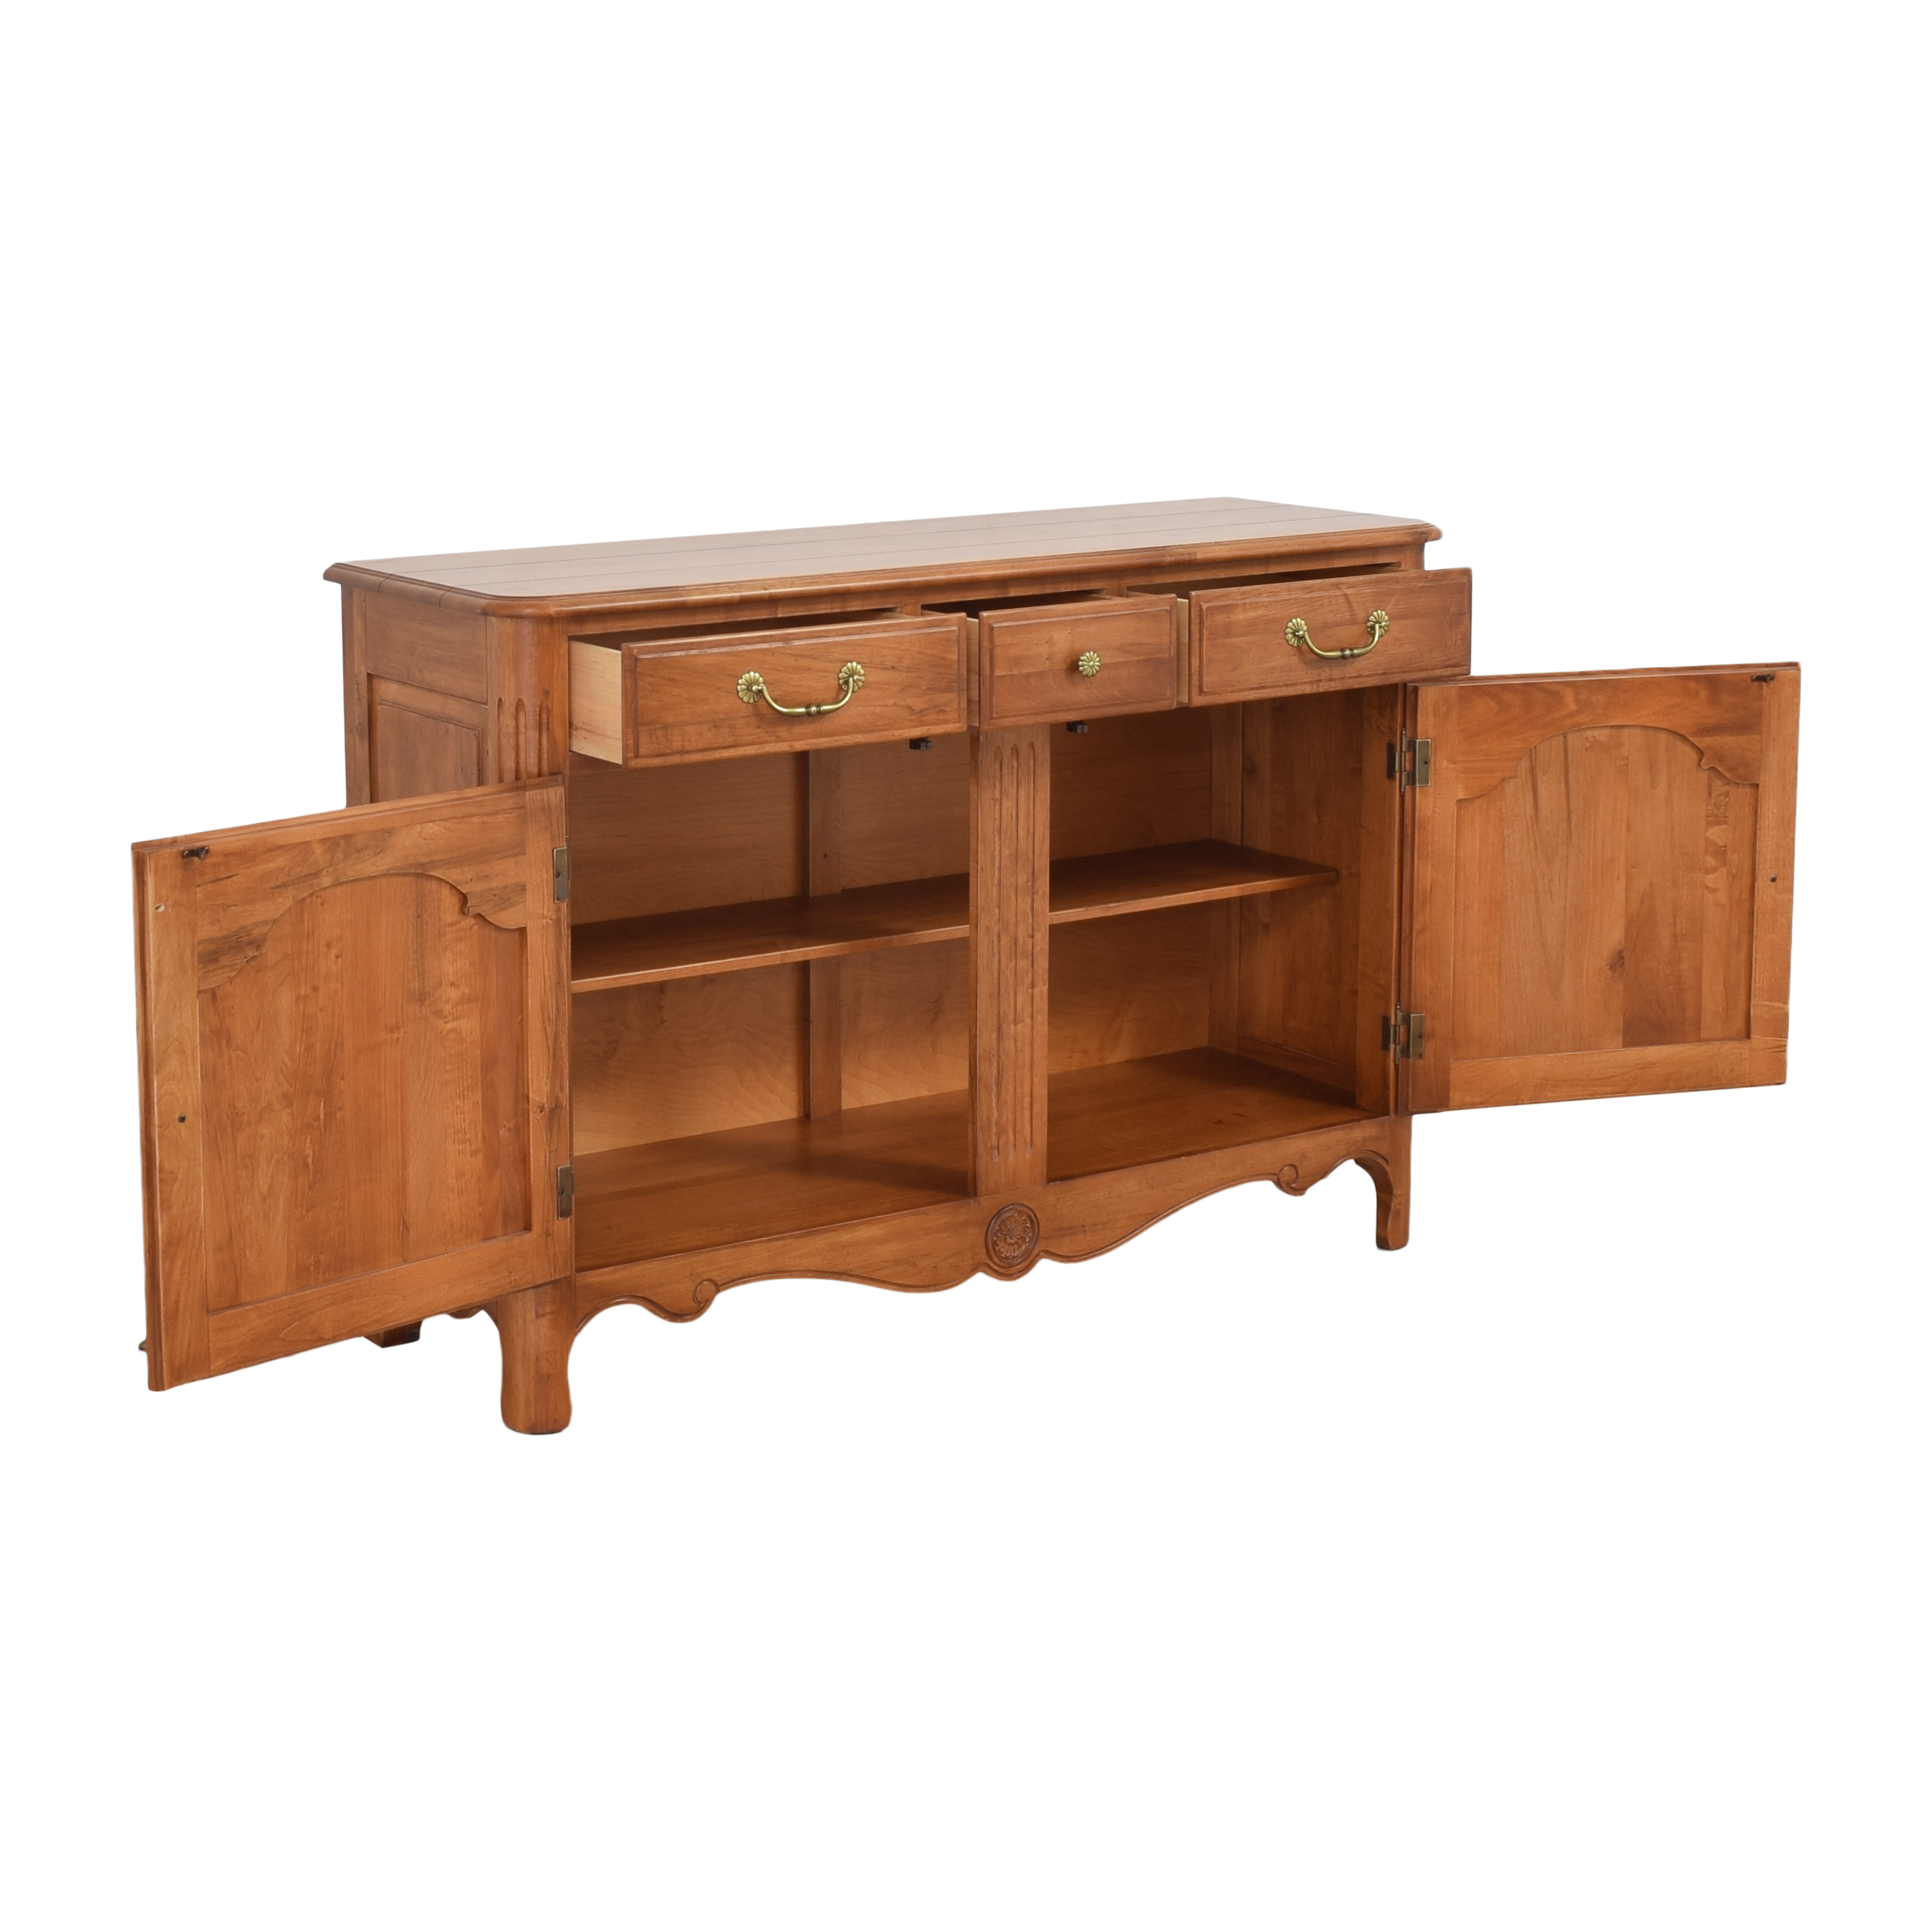 Ethan Allen Ethan Allen Legacy Collection Sideboard price